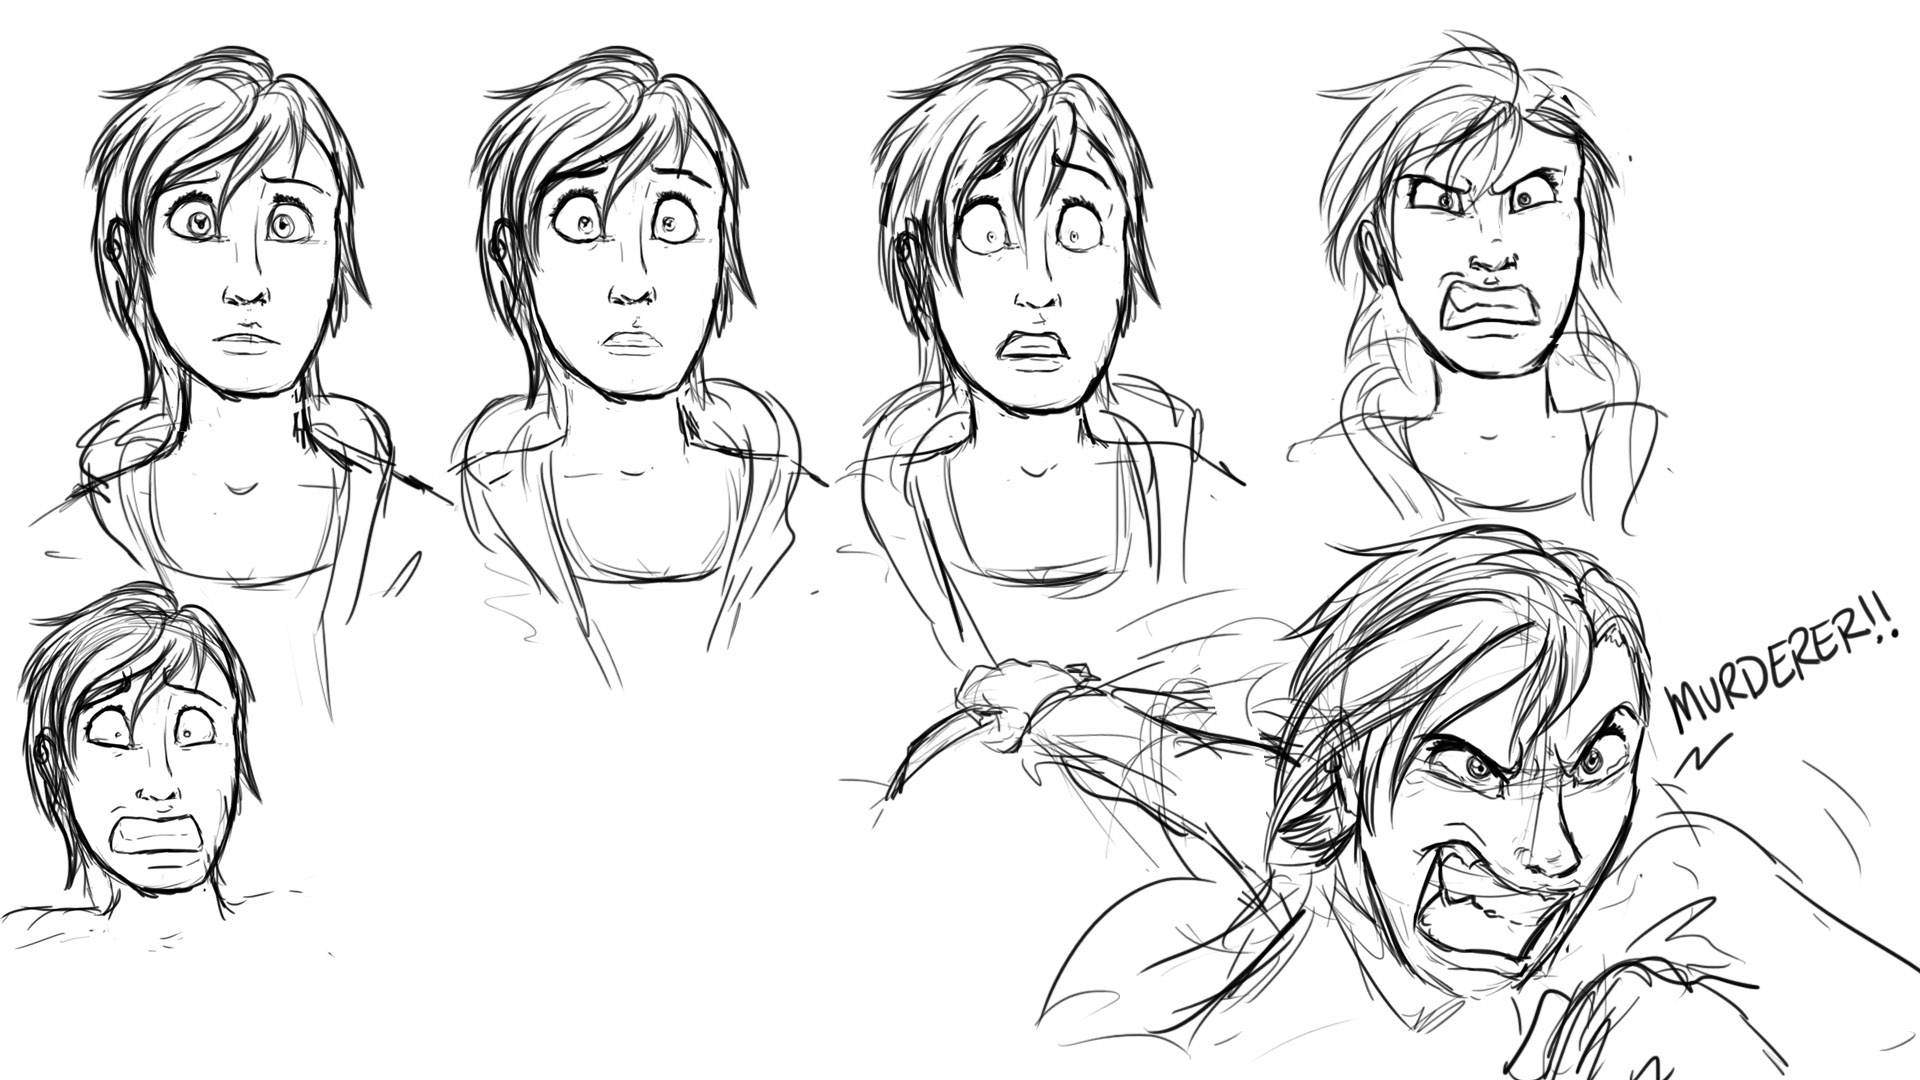 Sad Expression Progression